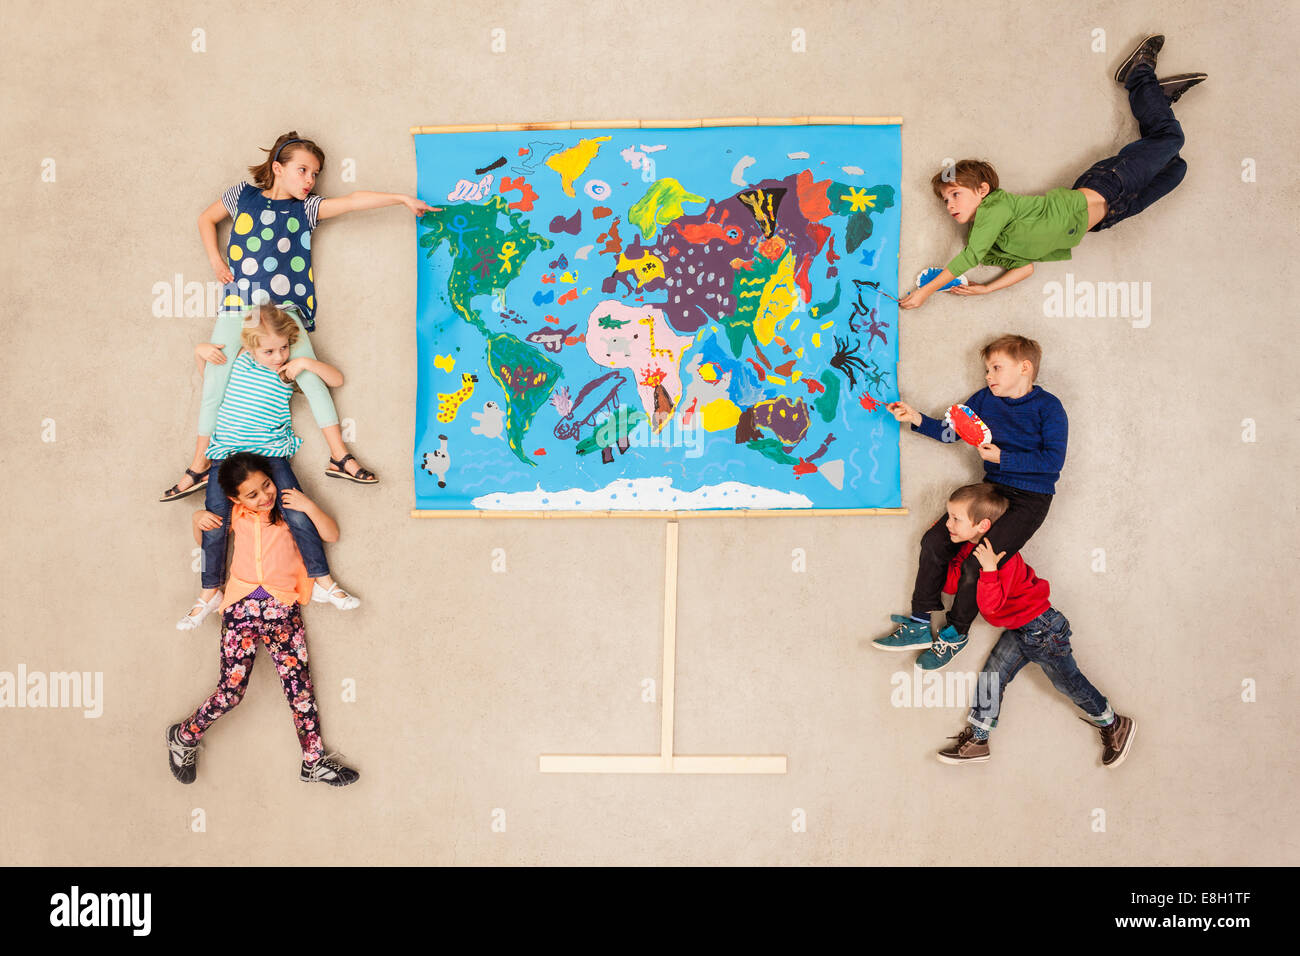 World map, children learning geography - Stock Image